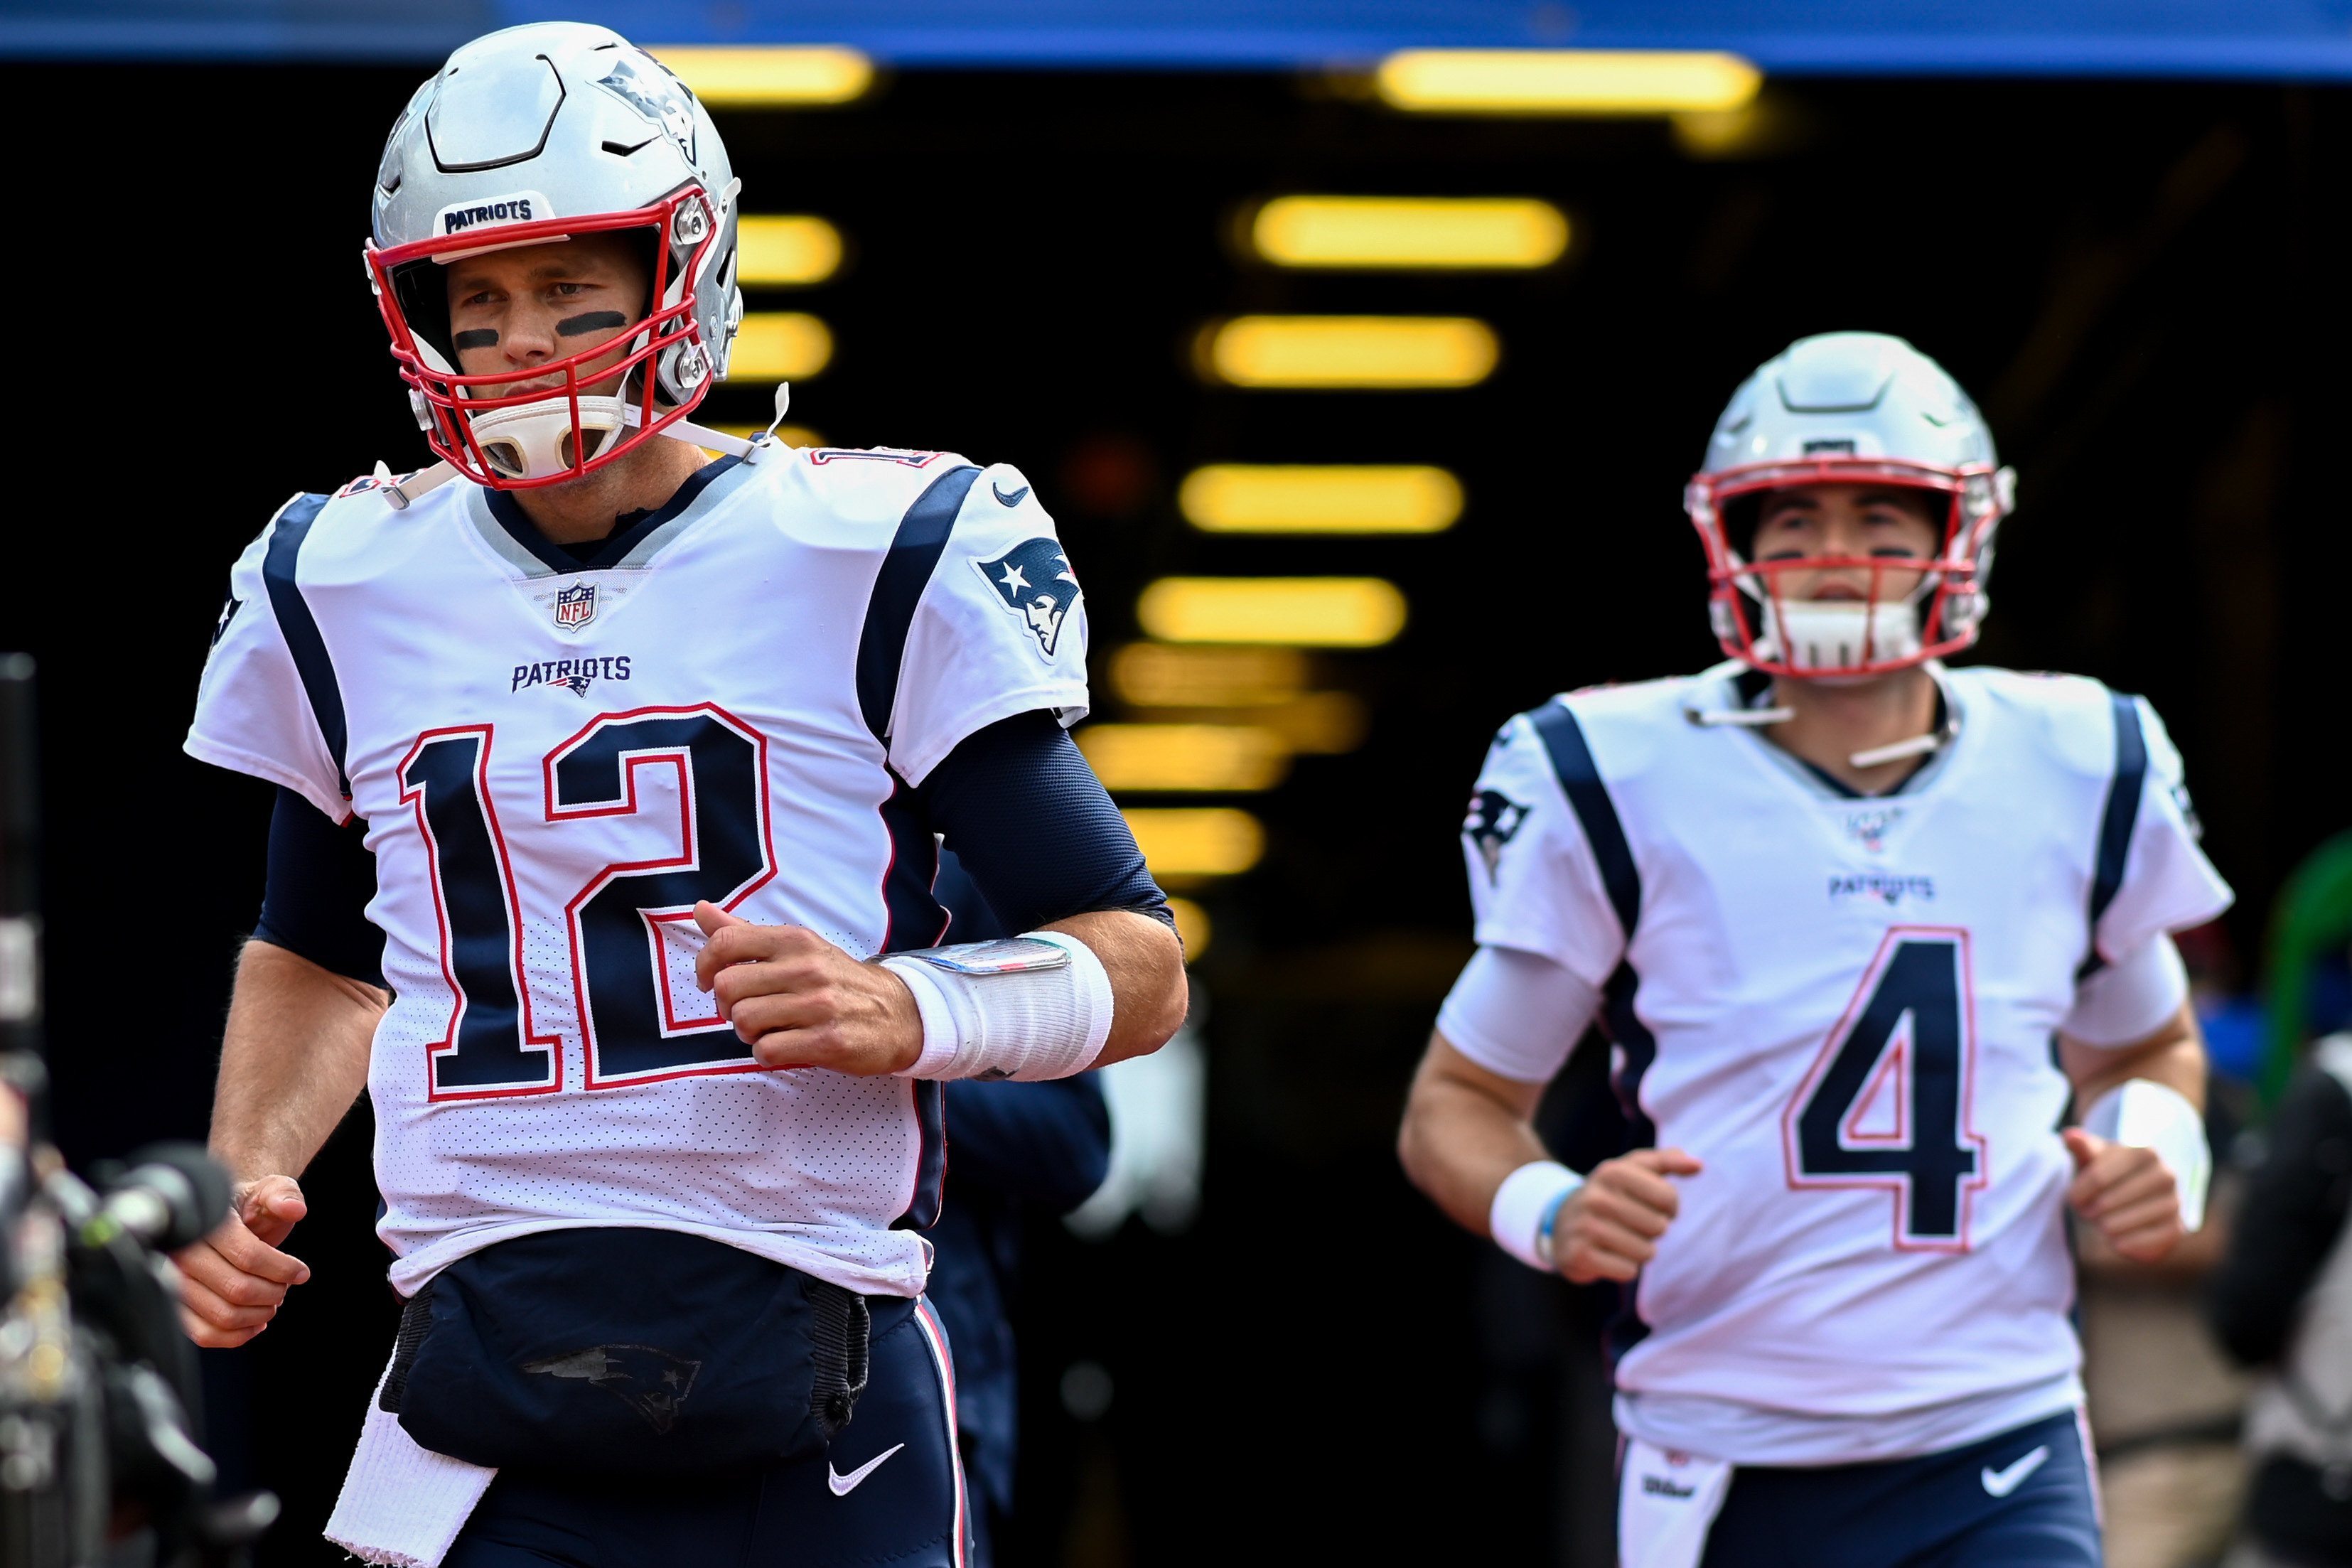 The Patriots Have Two Options Re Sign Tom Brady Or Rebuild With Jarrett Stidham